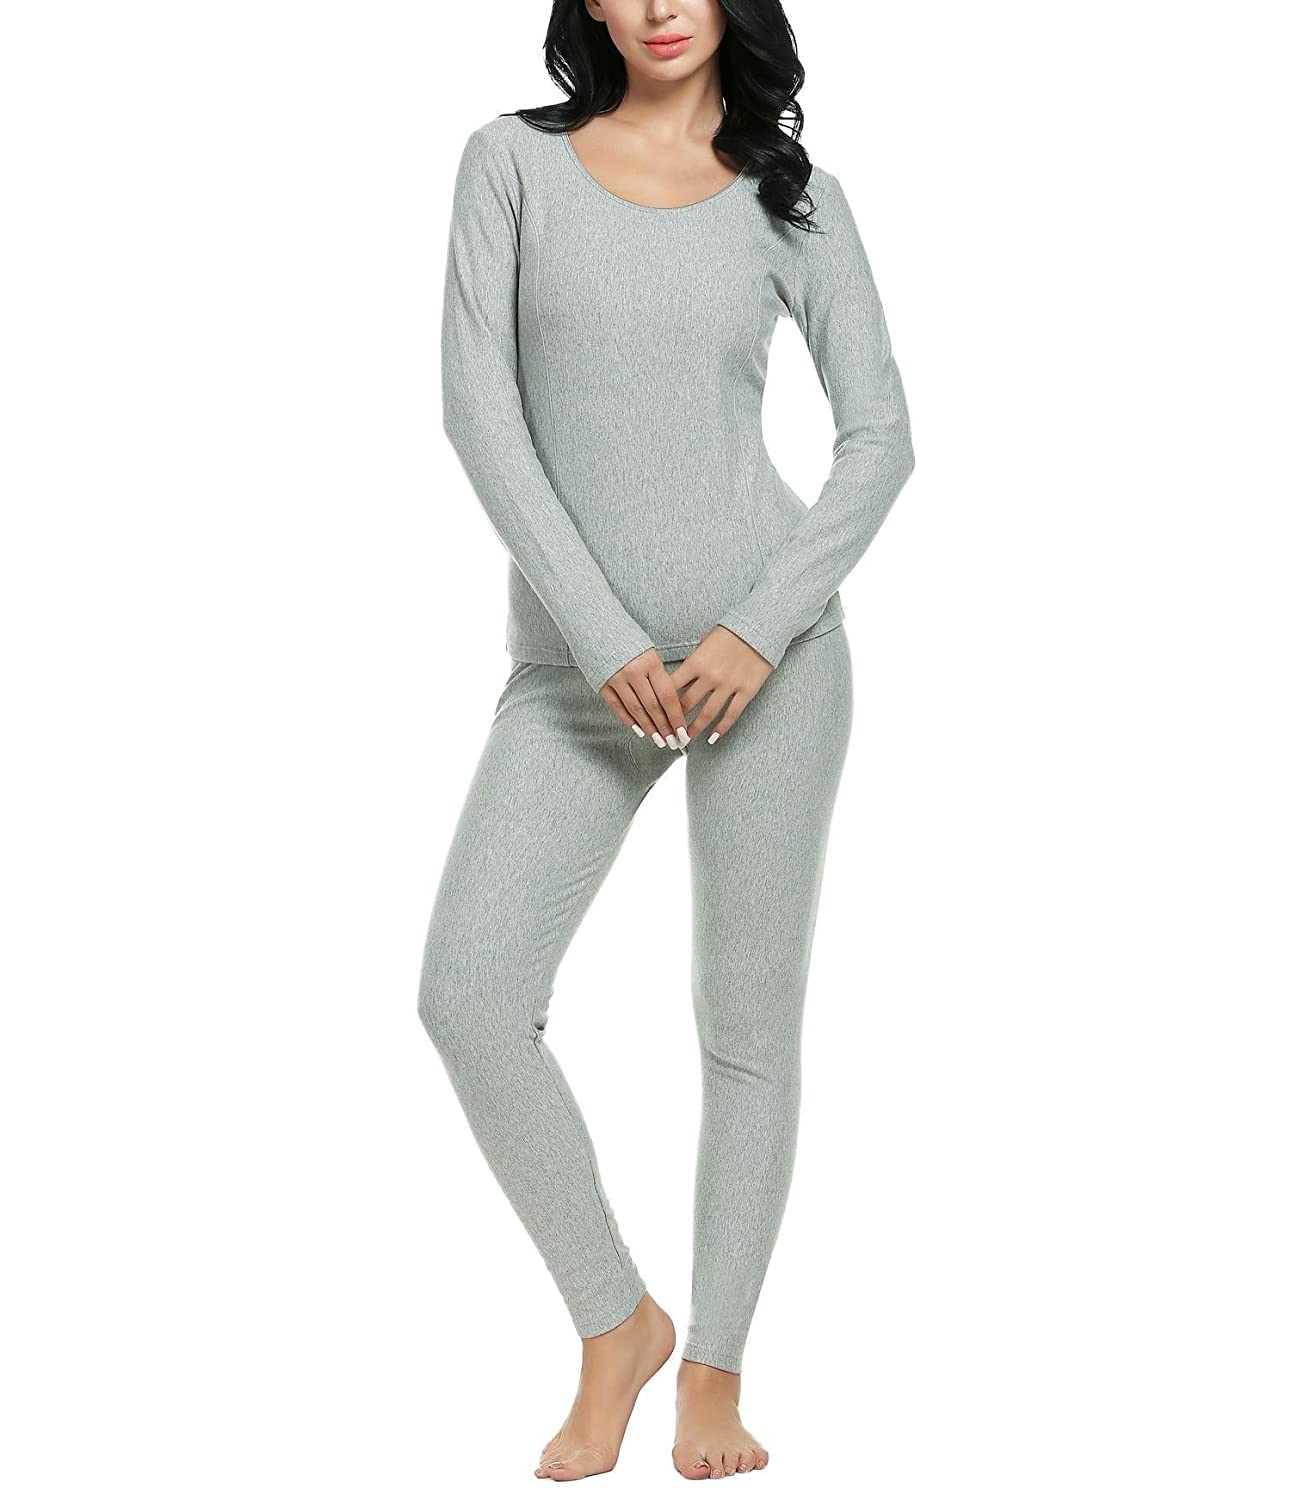 Imposes Women Thermal Underwear Ultra Soft Long Sleeve Top and Bottom Pajama Set (S-3XL)